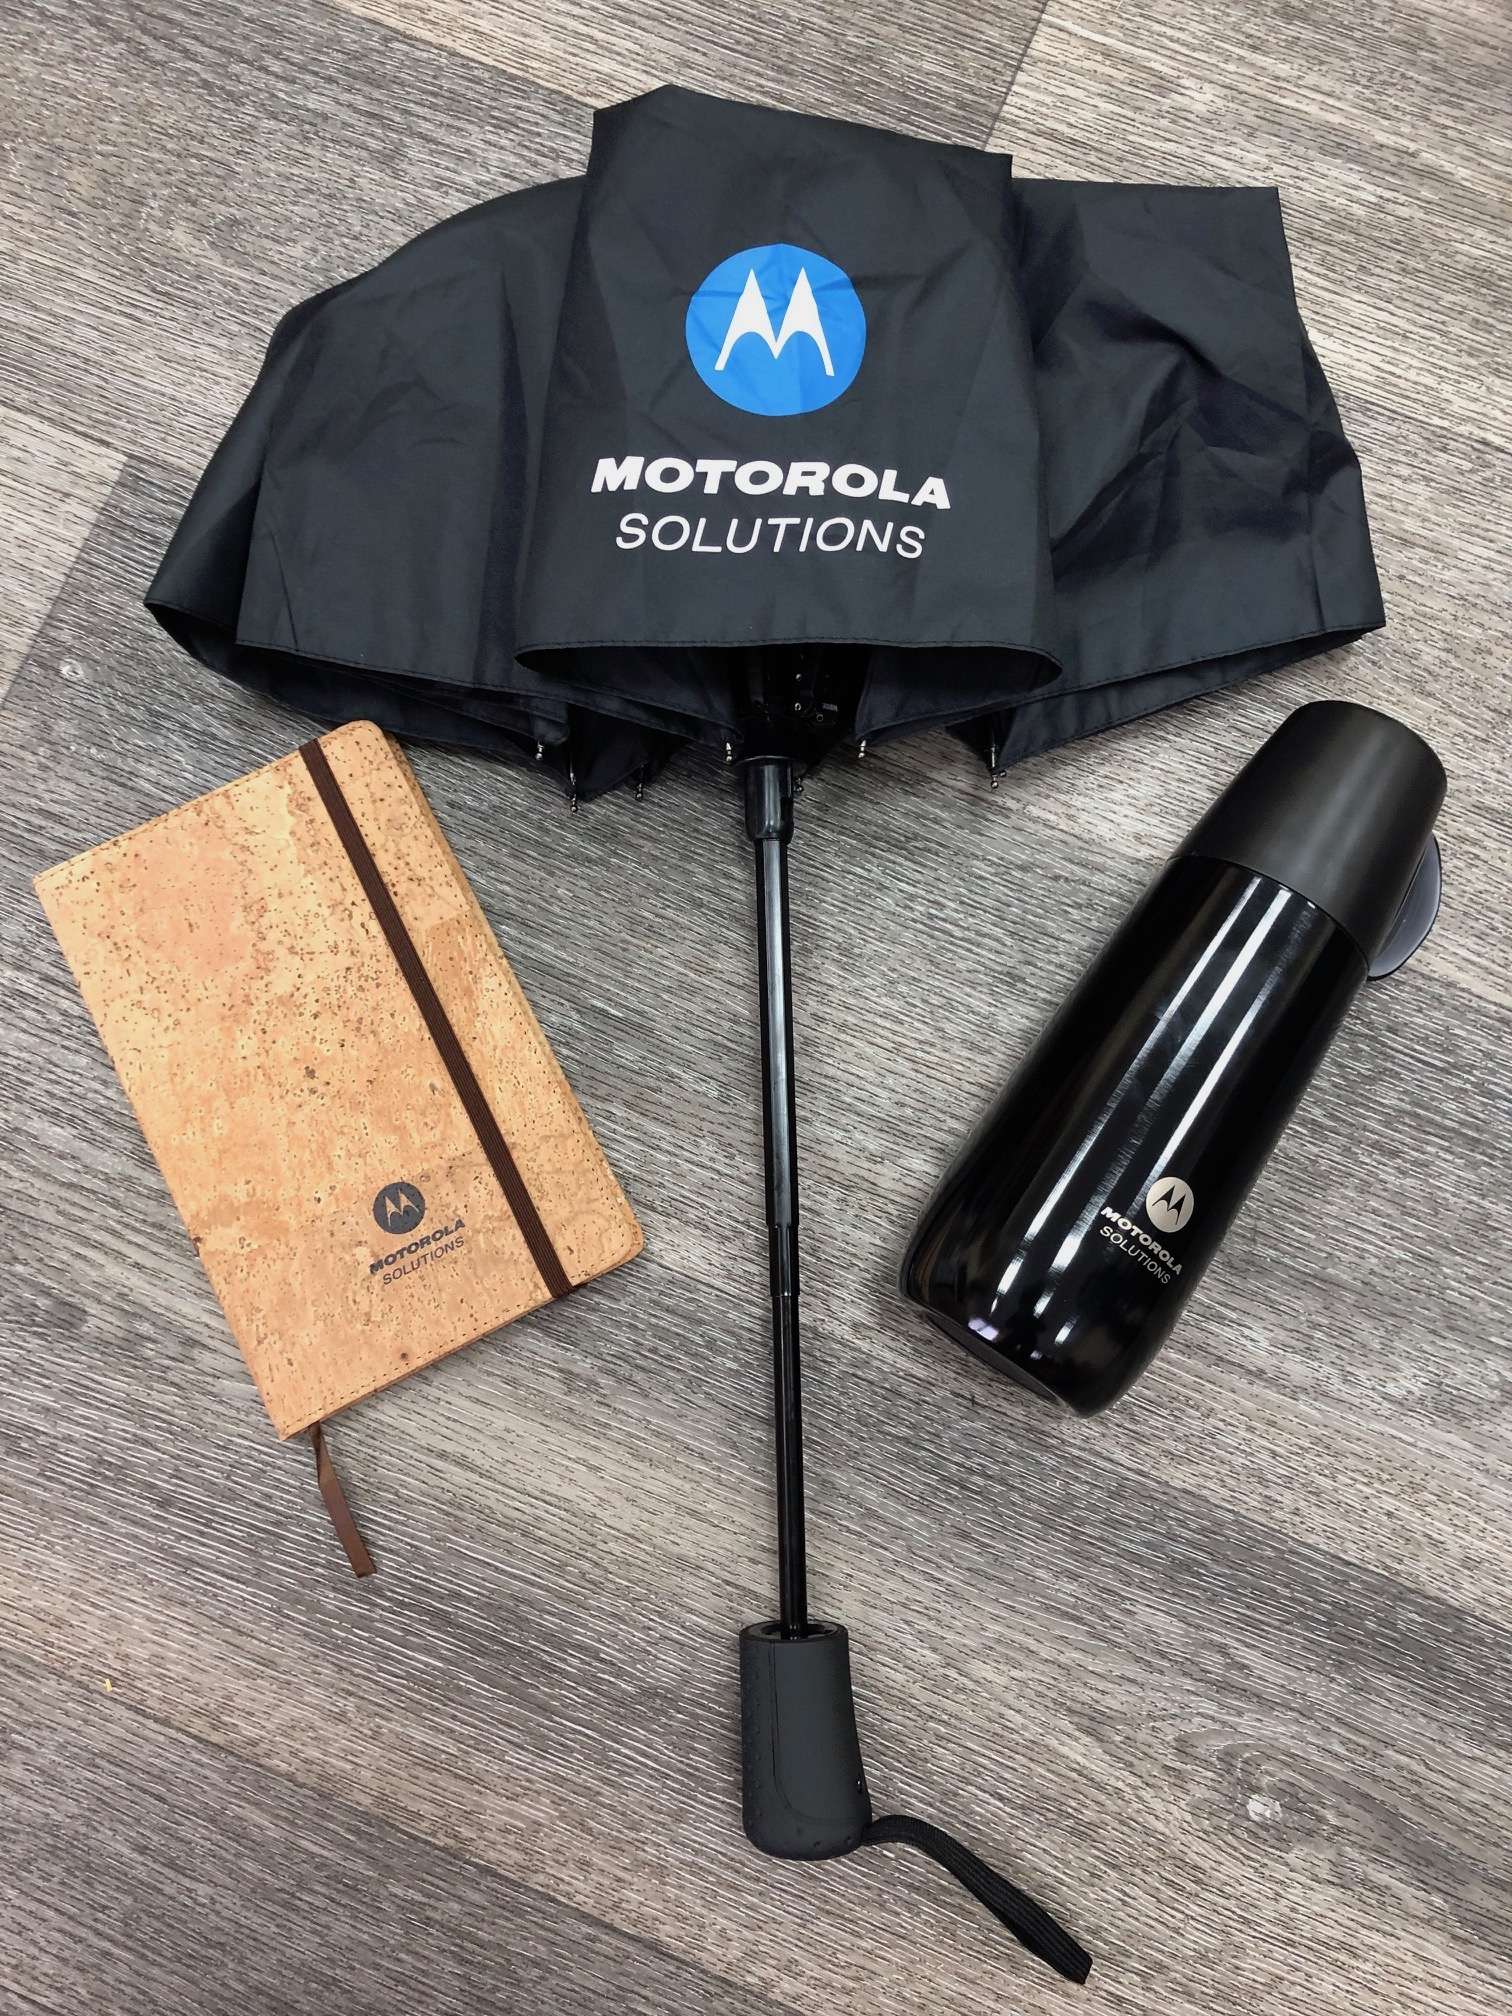 Corporate gifts and printing services for Motorola Solutions